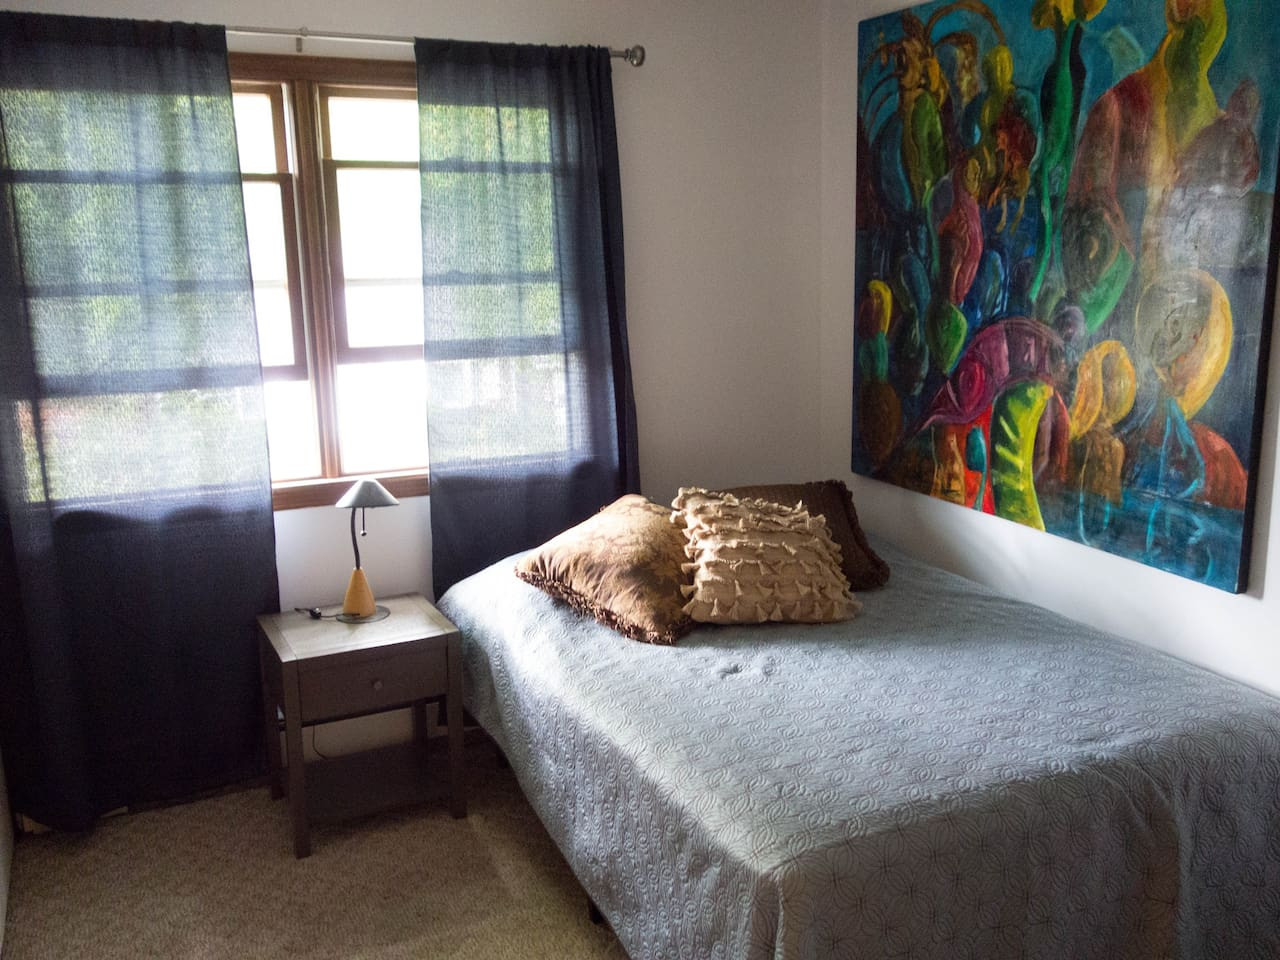 Guest room with wifi, air conditioner and fan available...full size bed and fresh linens.